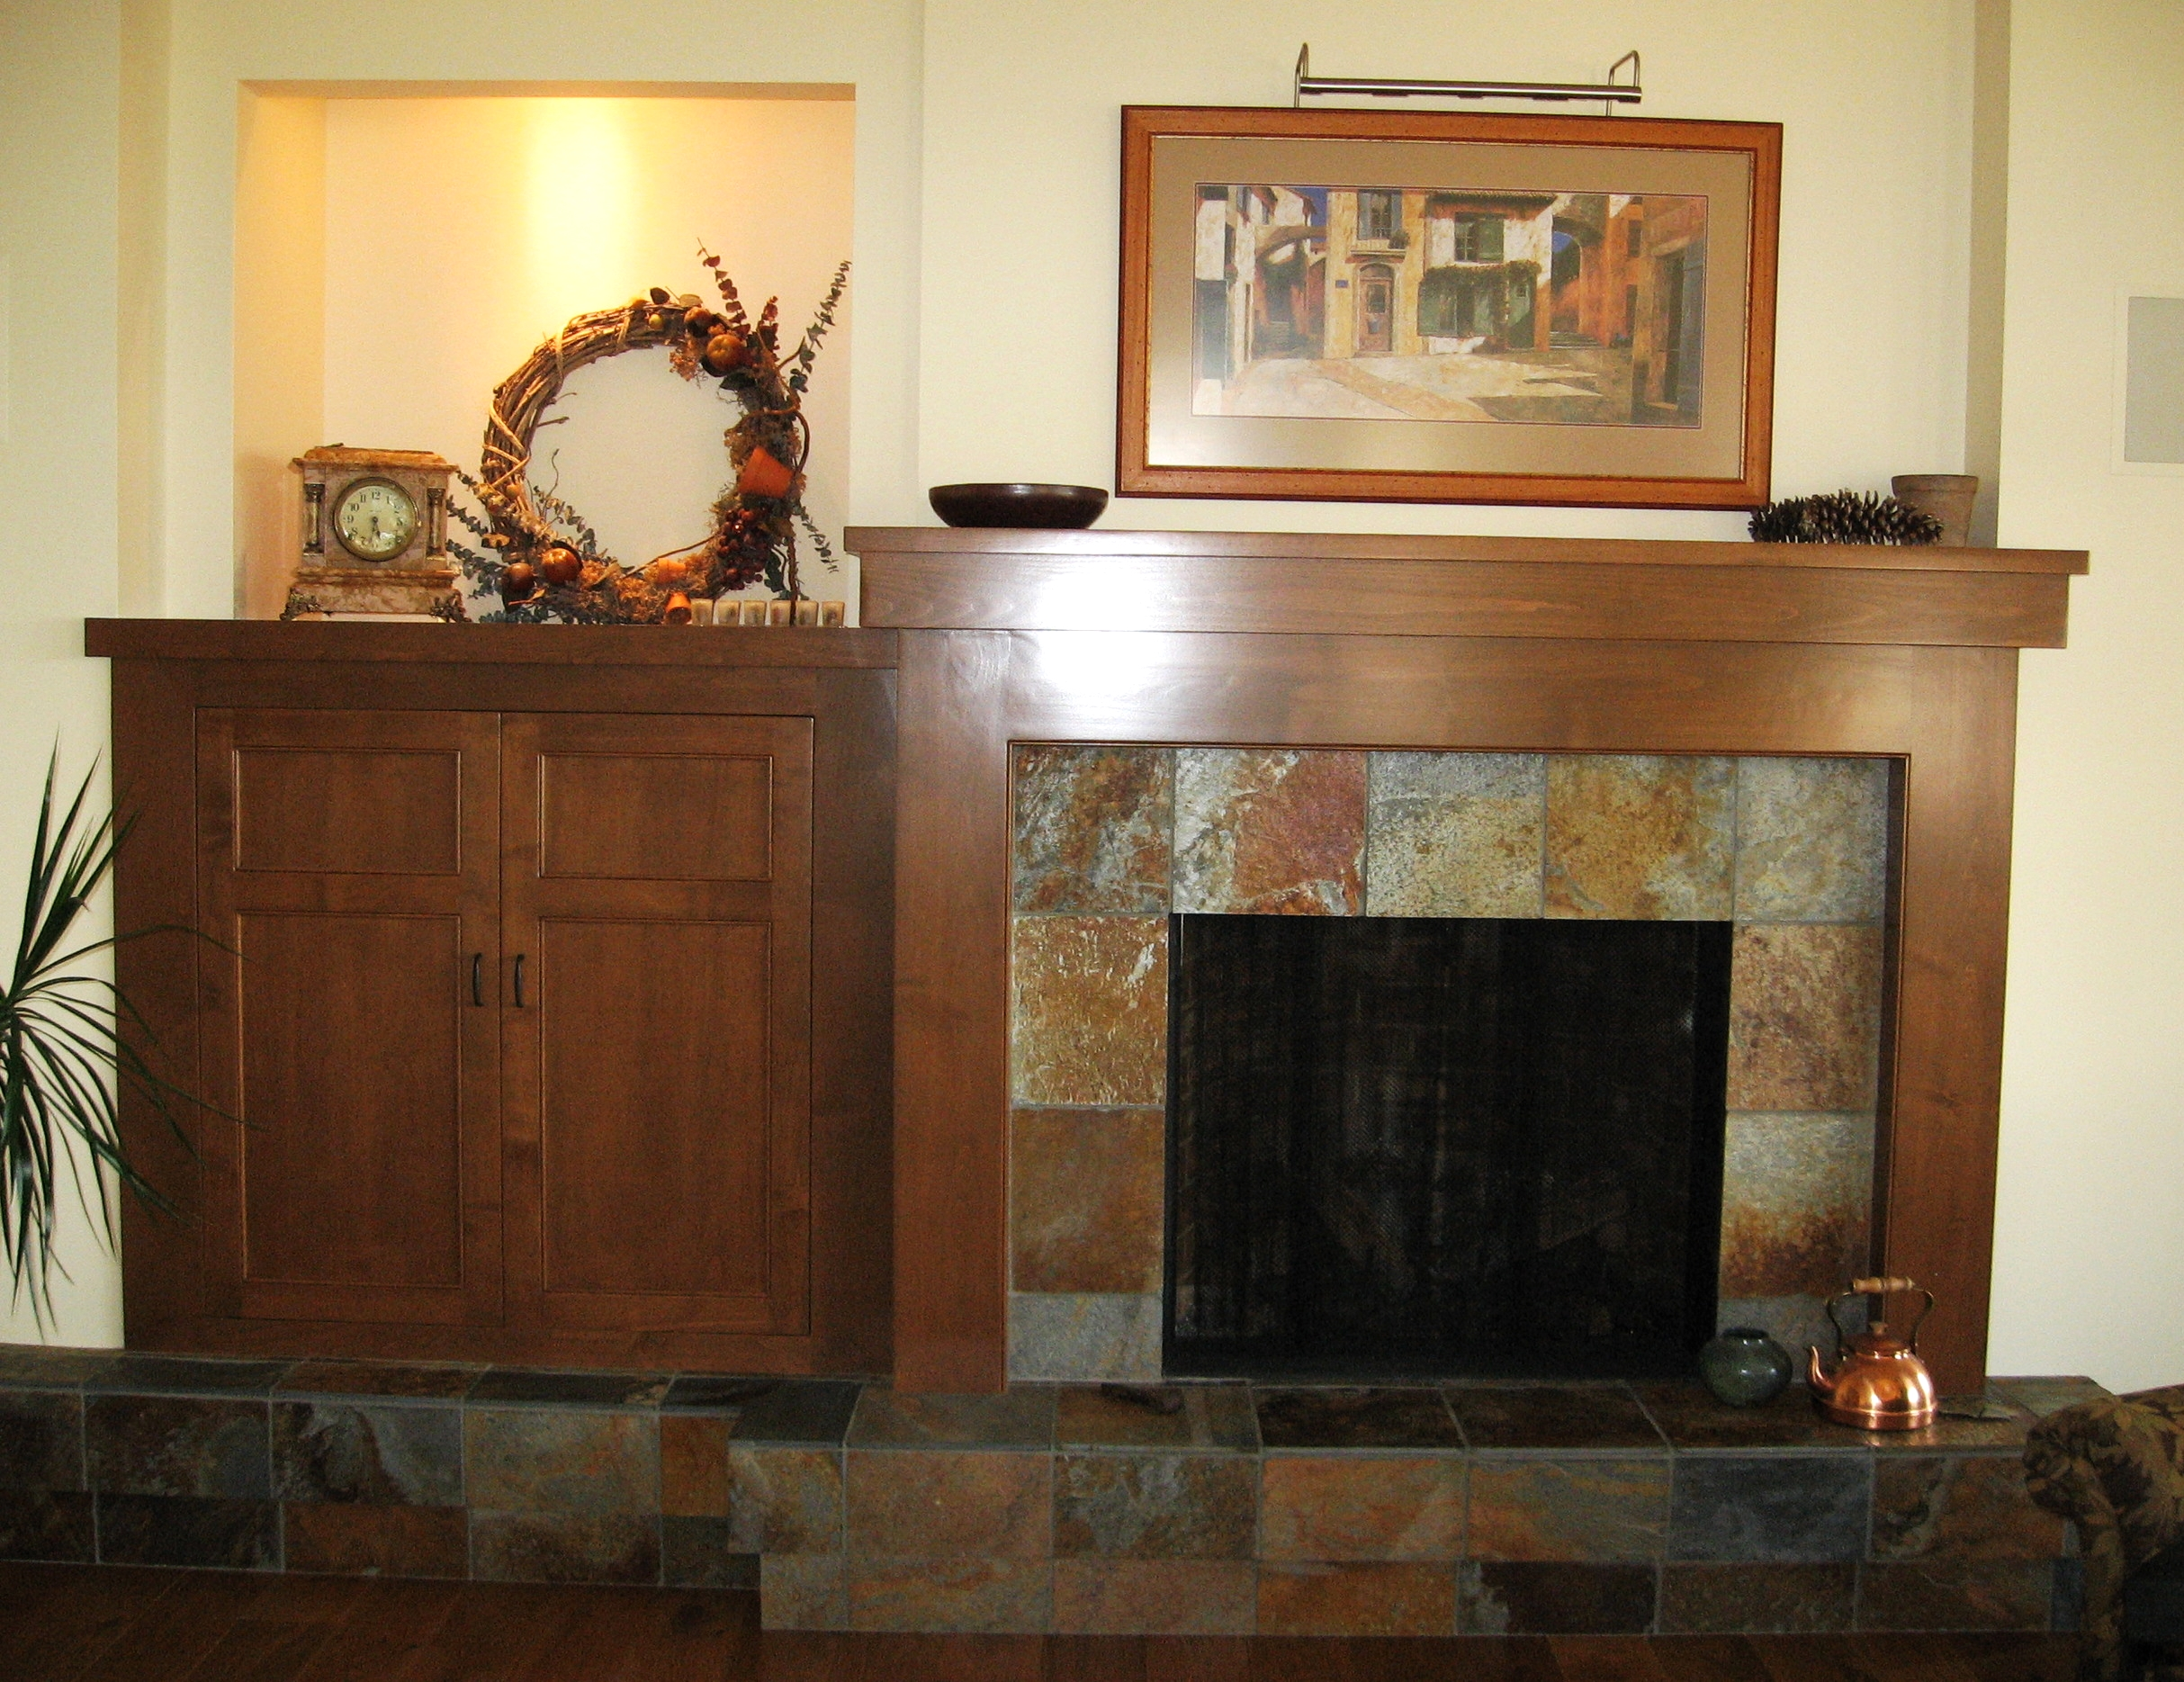 custom-built-arts-and-crafts-style-fireplace-mantle-and-cabinet.JPG